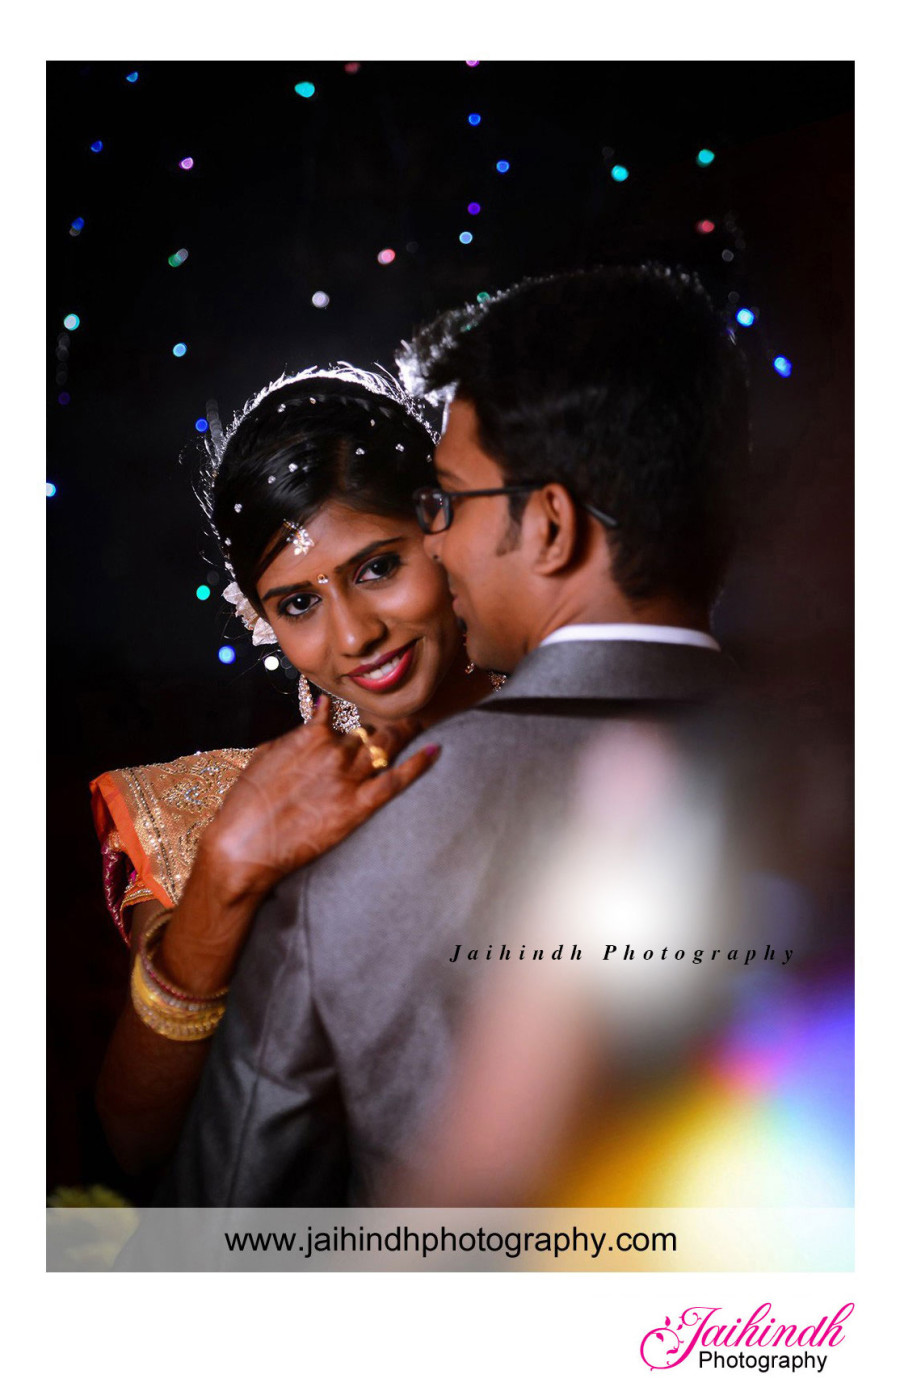 Candid photography in Virudhunagar, Wedding Photography in Virudhunagar, Best Photographers in Virudhunagar, Candid wedding photographers in Virudhunagar, Marriage photography in Virudhunagar, Candid Photography in Virudhunagar, Best Candid Photographers in Virudhunagar. Videographers in Virudhunagar, Wedding Videographers in Virudhunagar